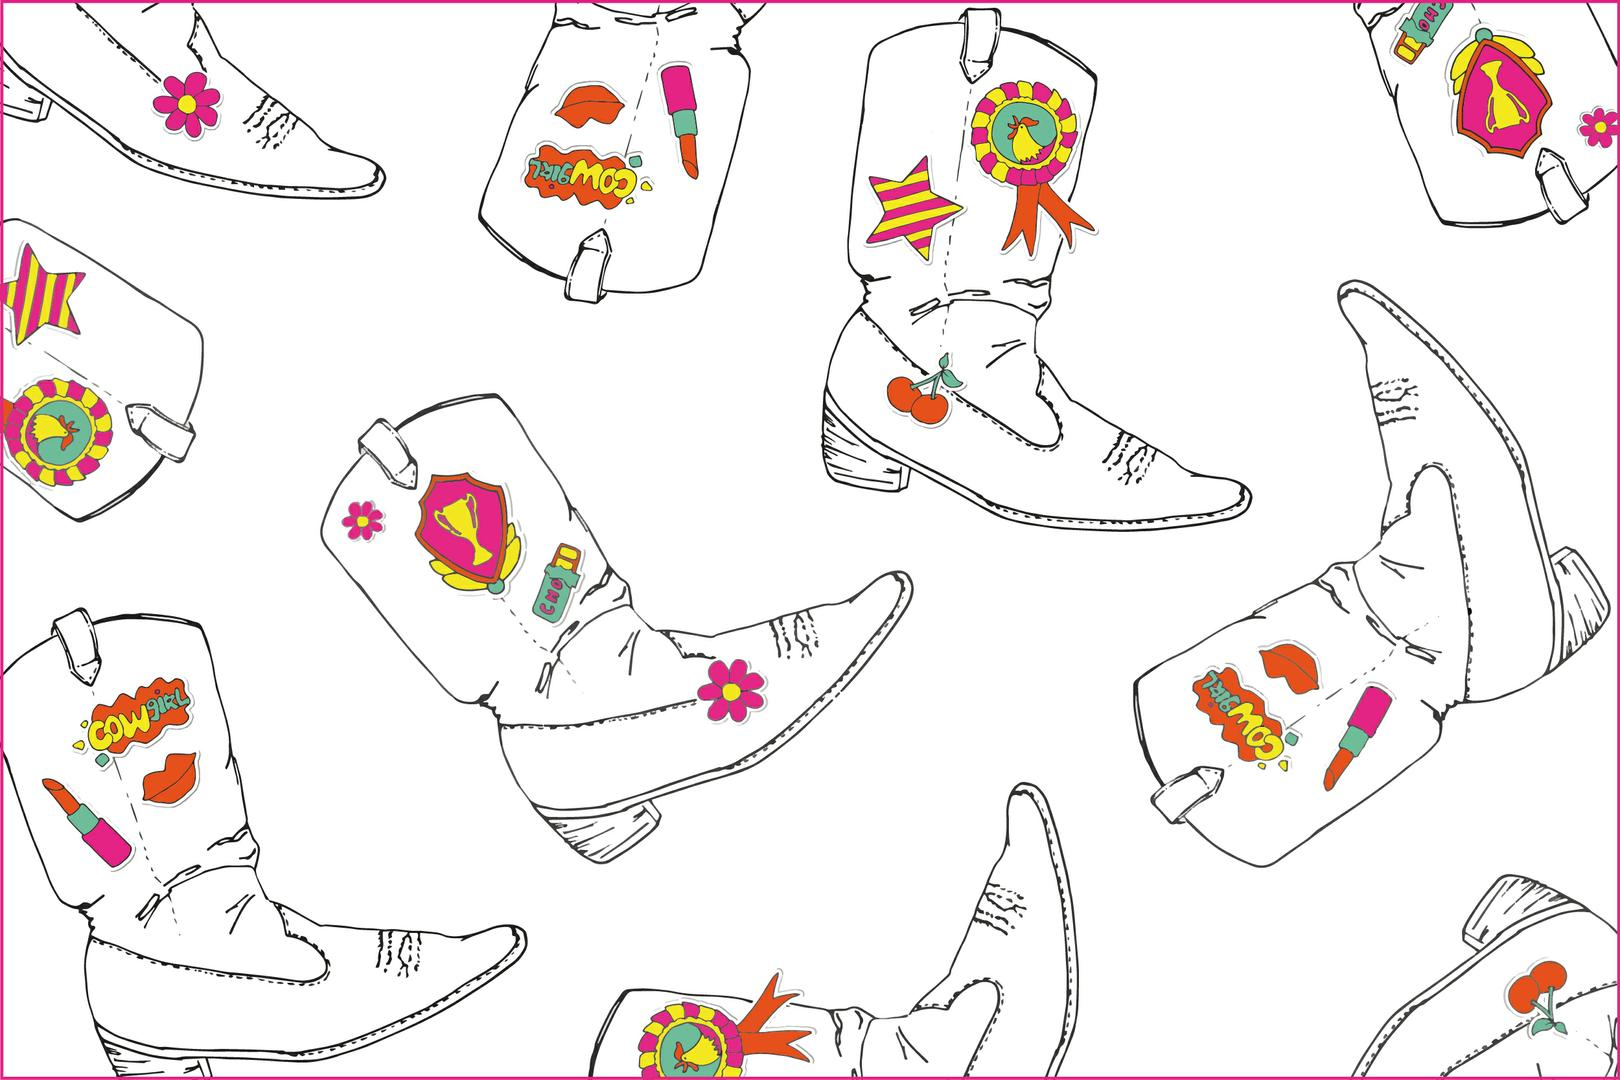 Pattern on tour fashion dessin, boots, teenage pattern, tiener patroon, interior